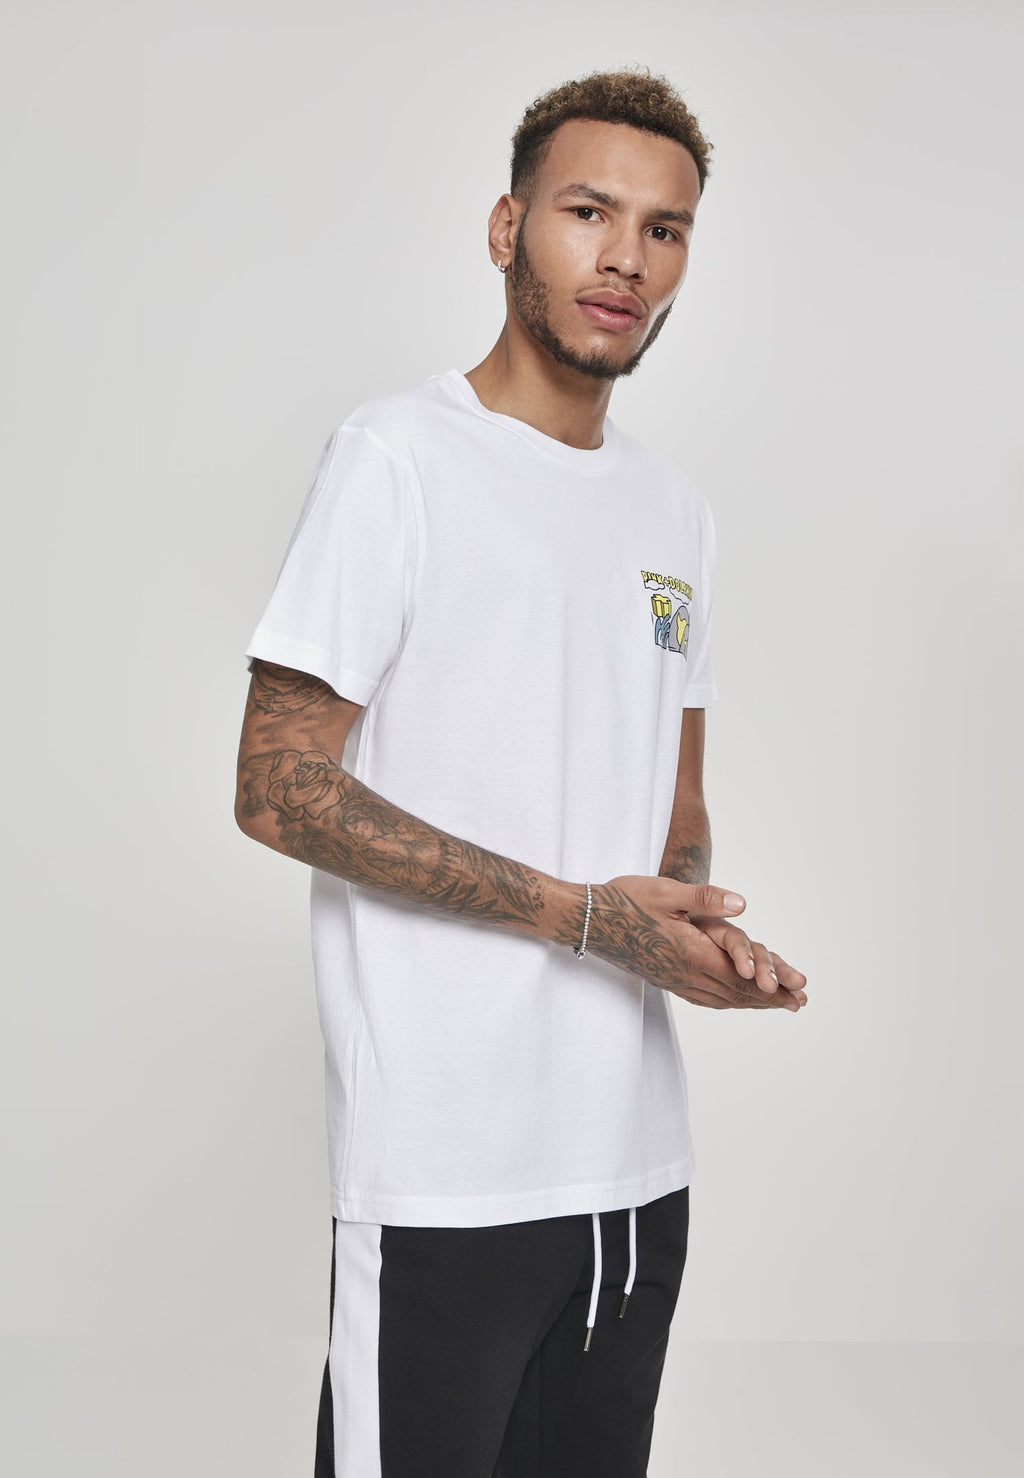 Level Up Tee - White